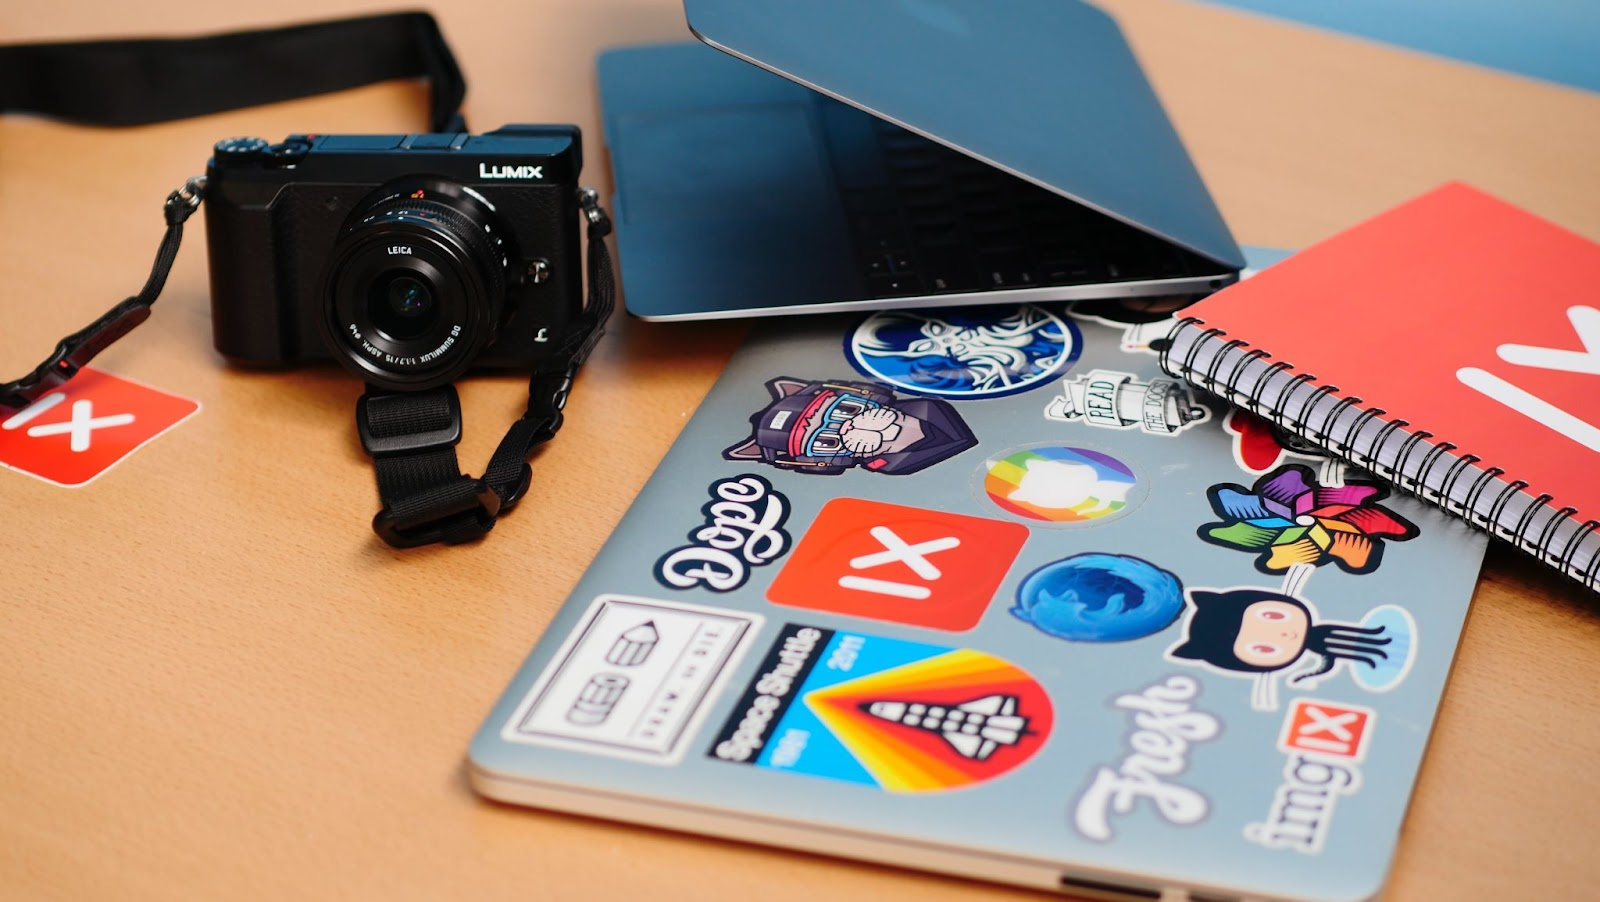 Custom stickers on a laptop, table. Camera, laptop, and notebook laying on table